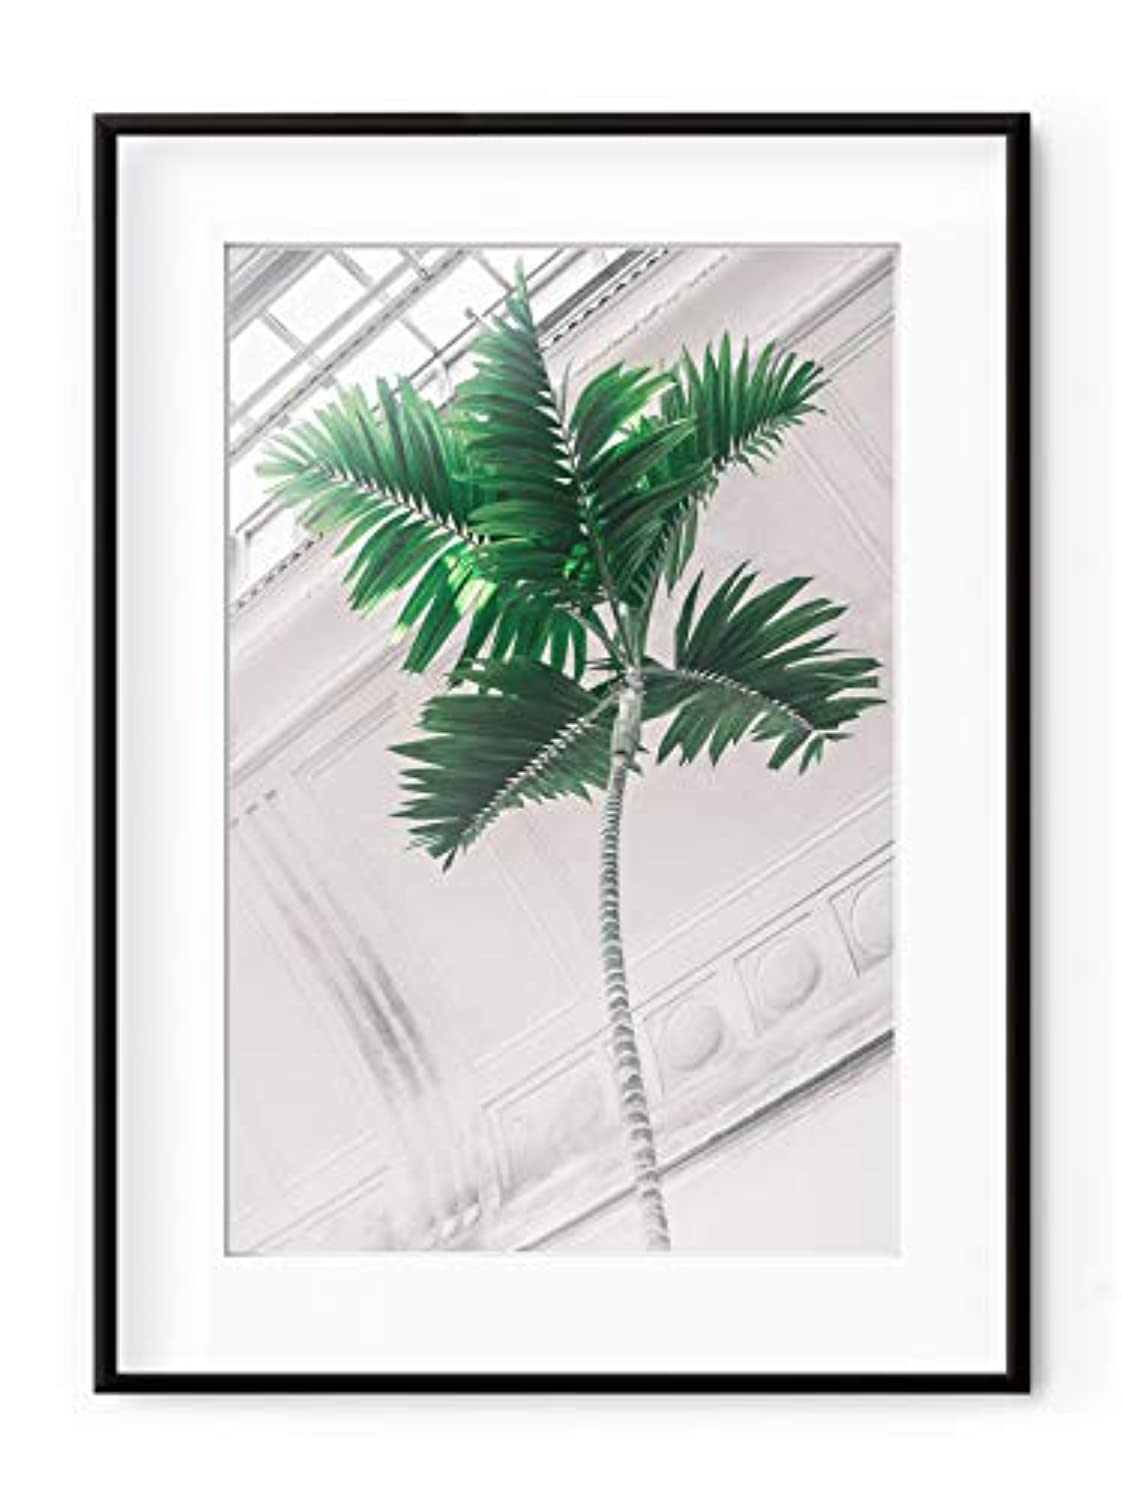 Inside The Green House 7 Satin Black Aluminium Frame with Mount, Multicolored, 40x50